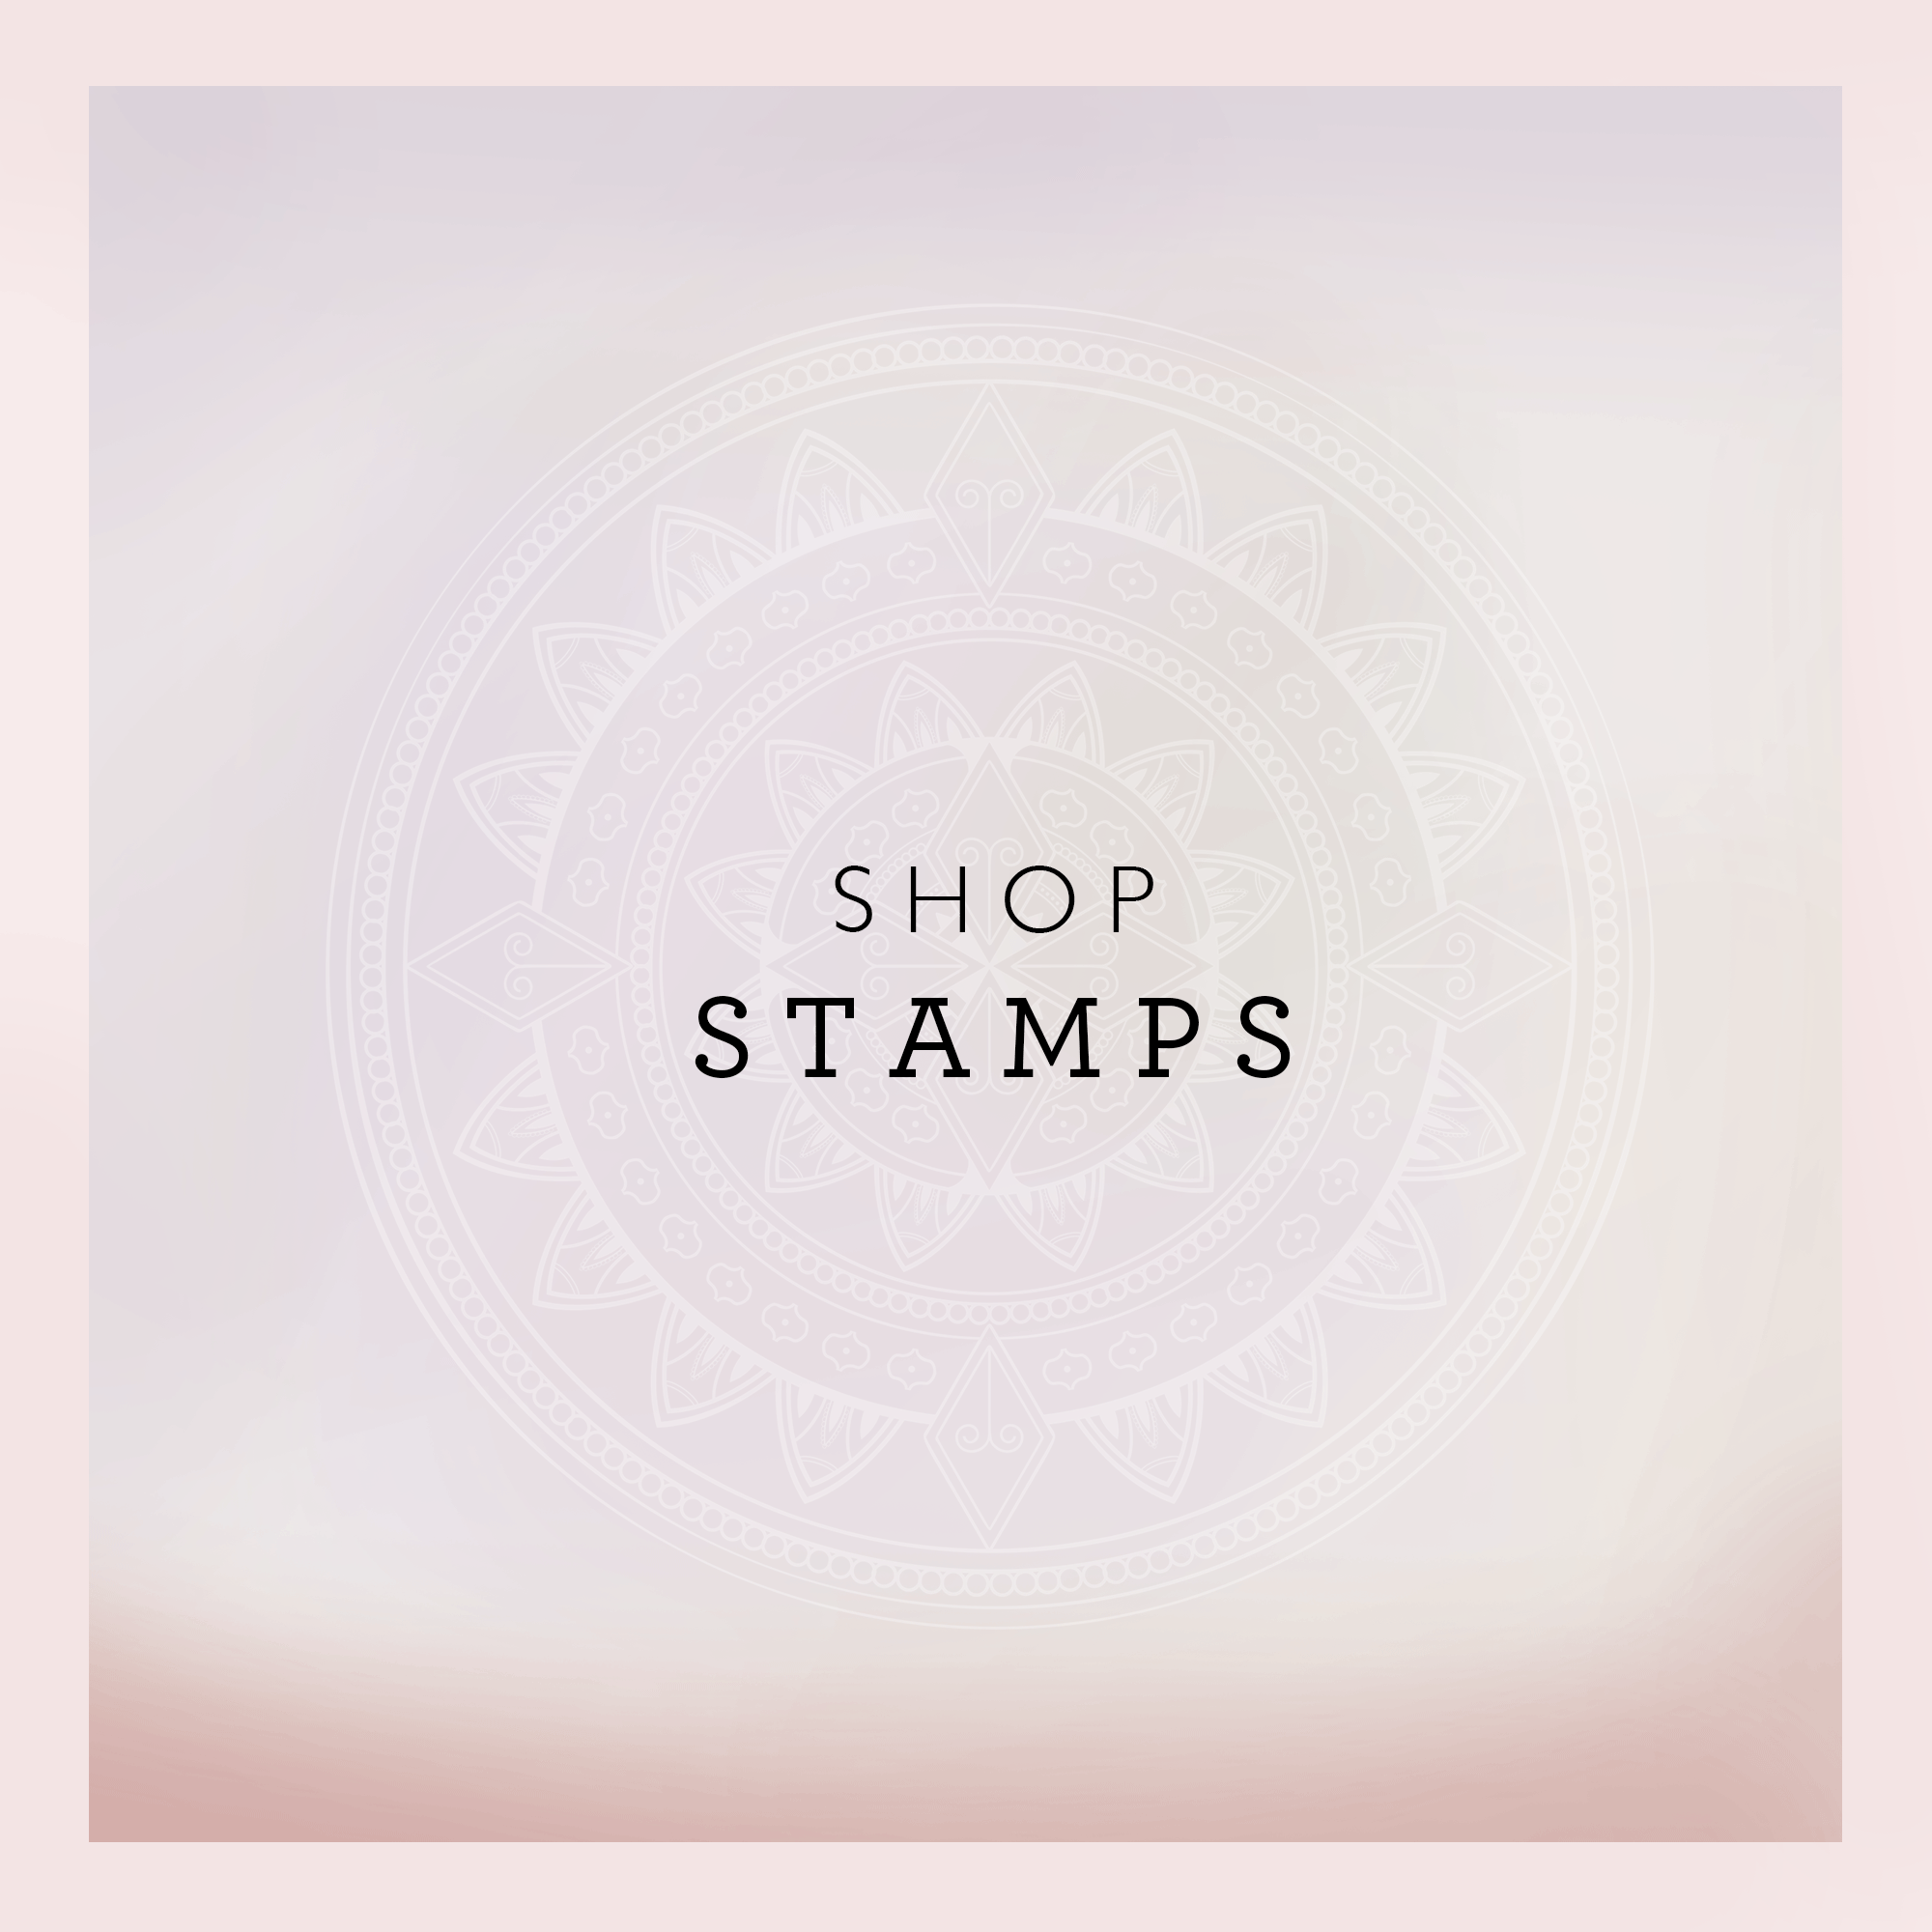 SHOP-STAMPS-GRAPHIC-3